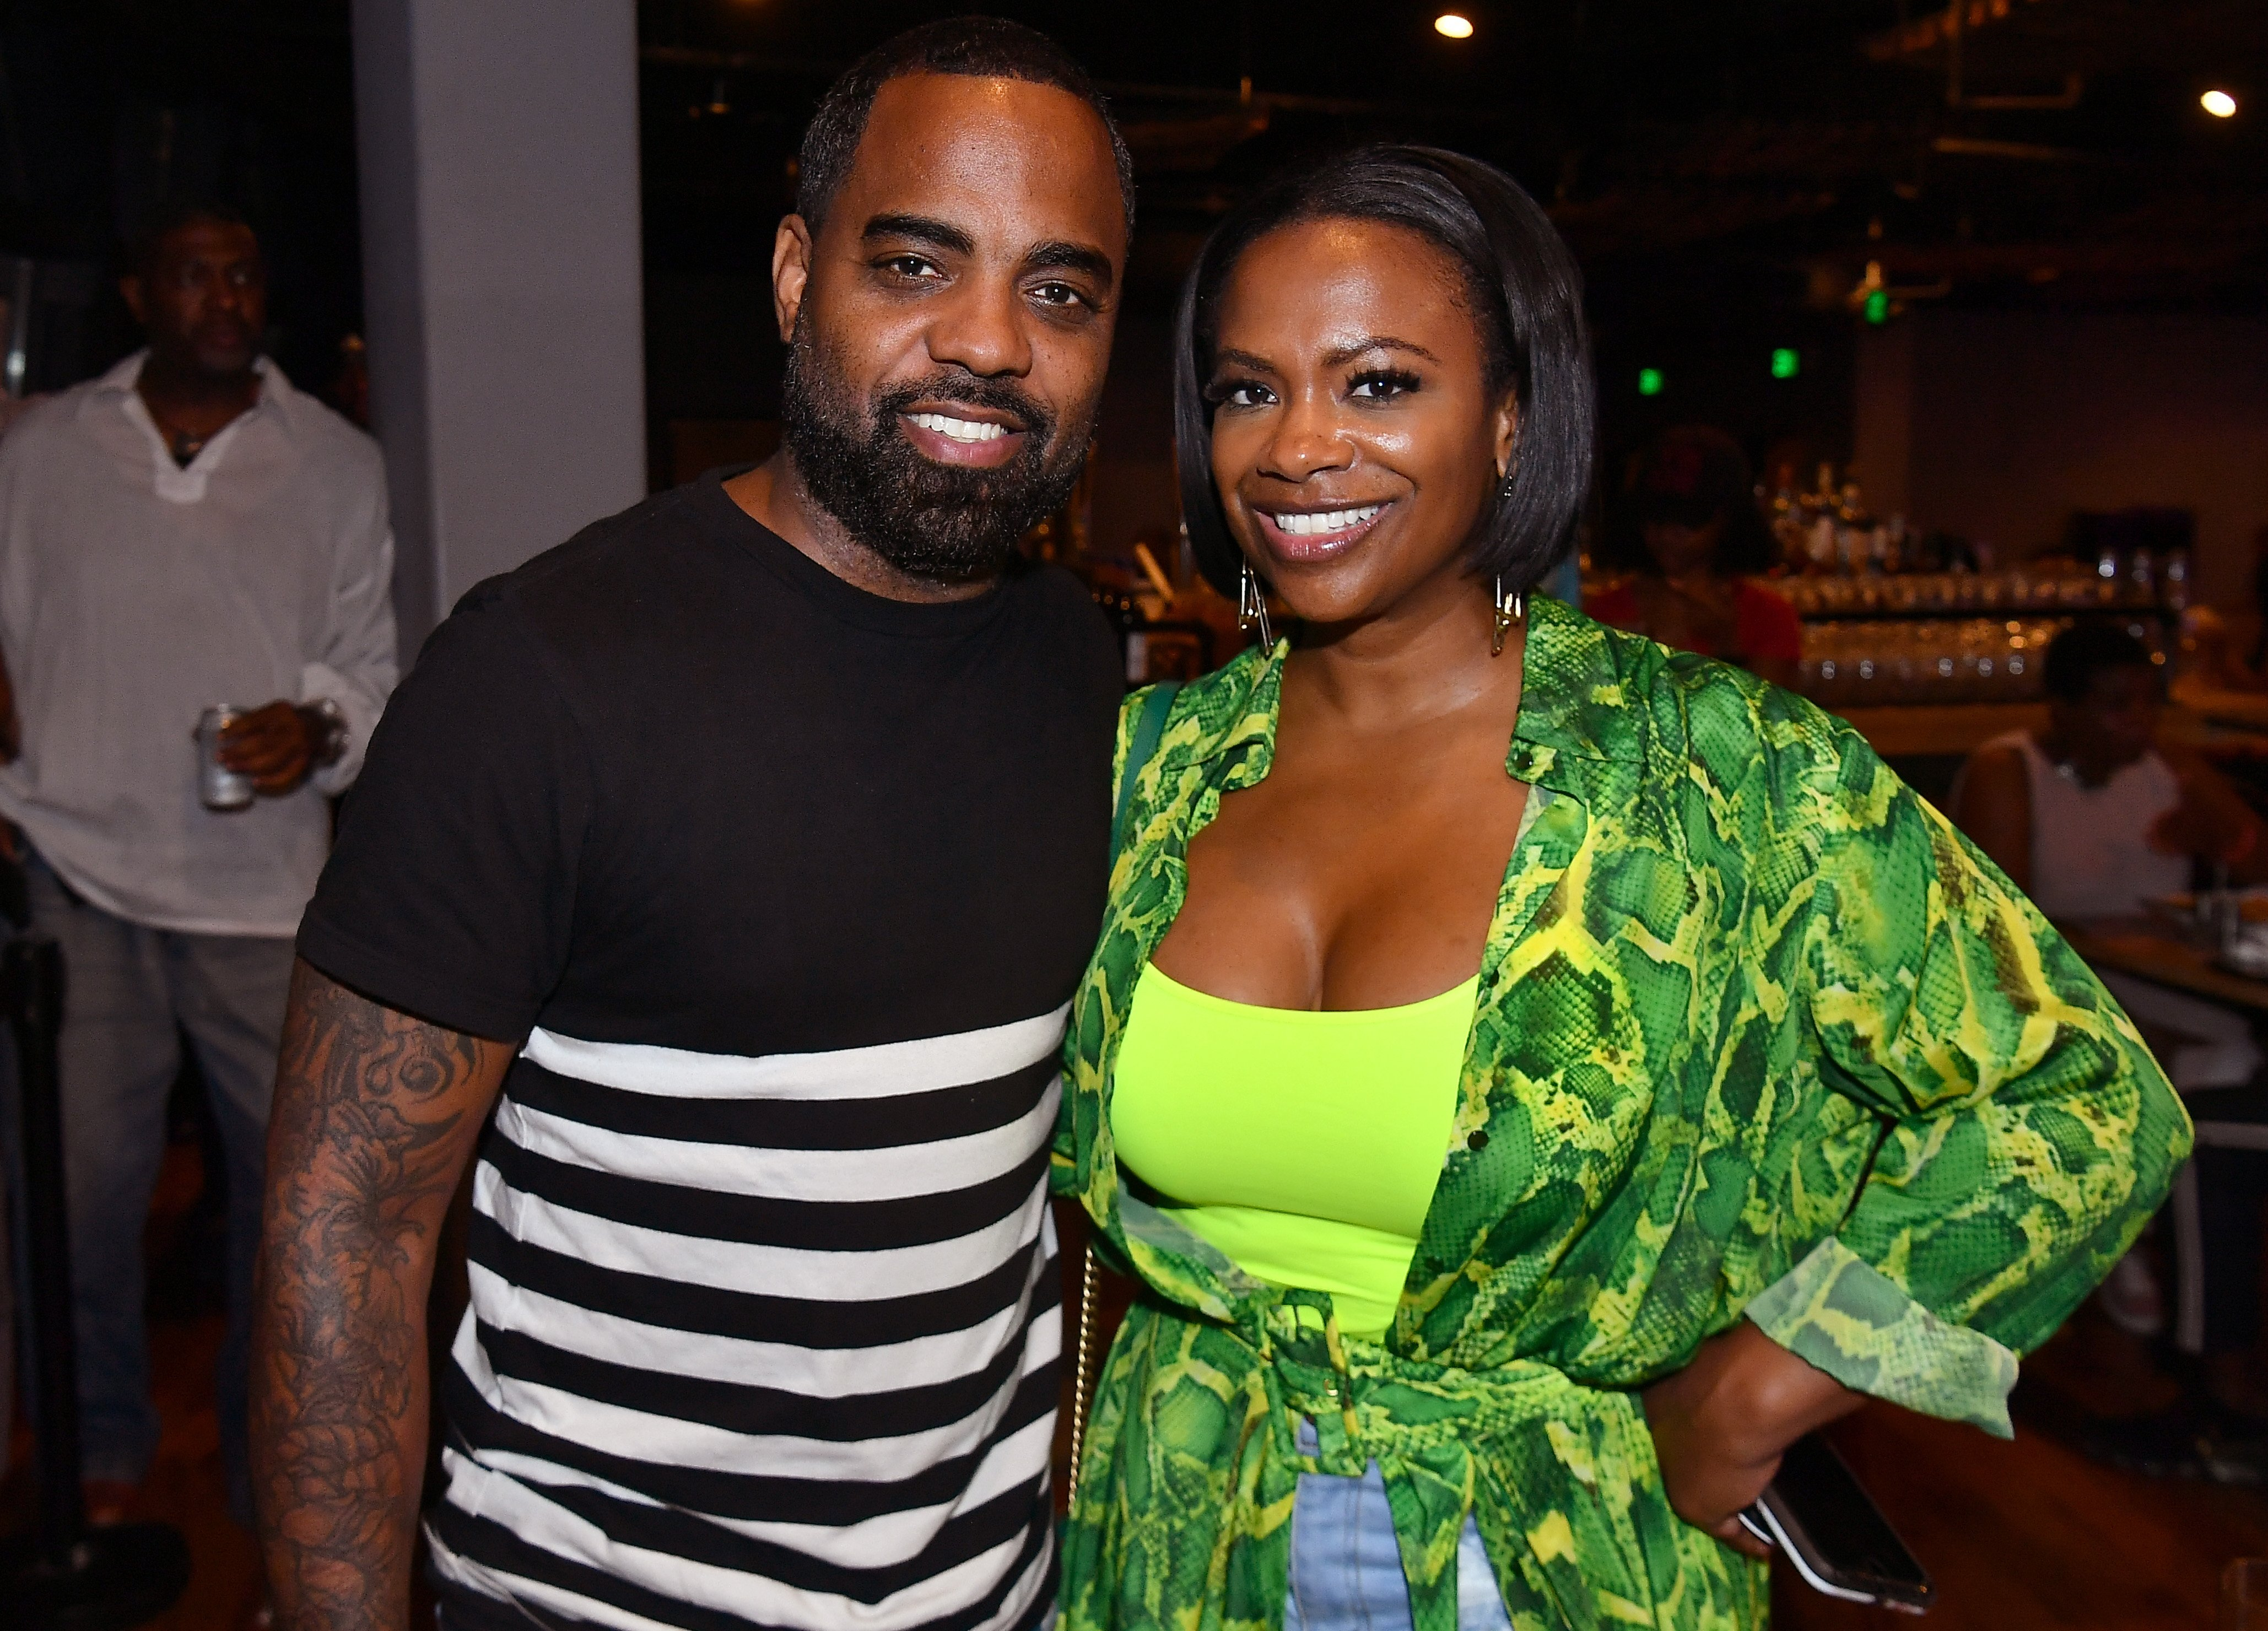 Todd Tucker and Kandi Burruss at Majic 107.5 After Dark at City Winery, 2019. | Photo: Getty Images